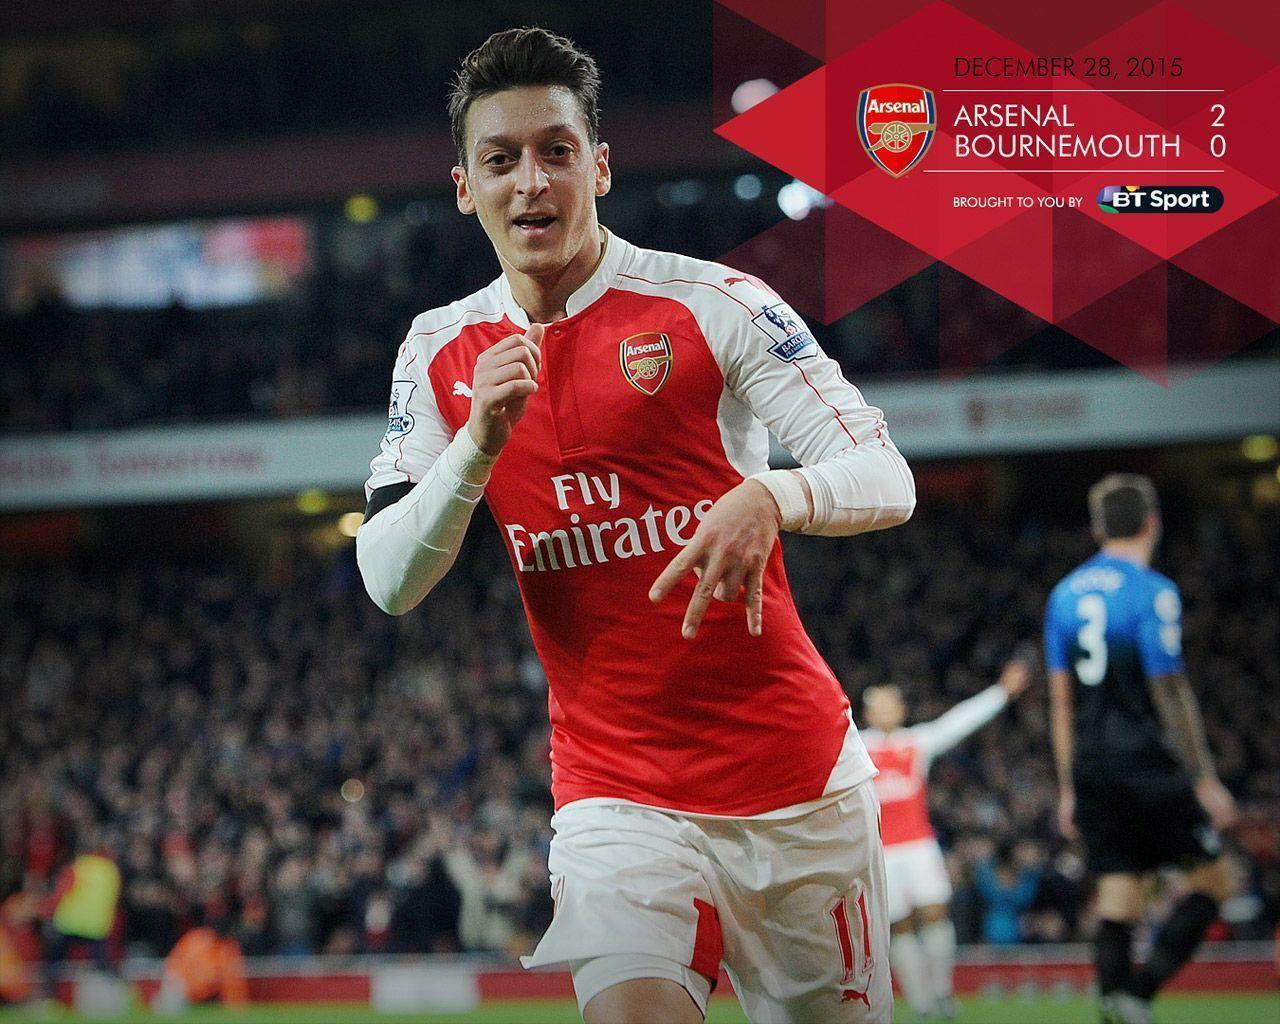 Arsenal Wallpapers 2016 1280x1024